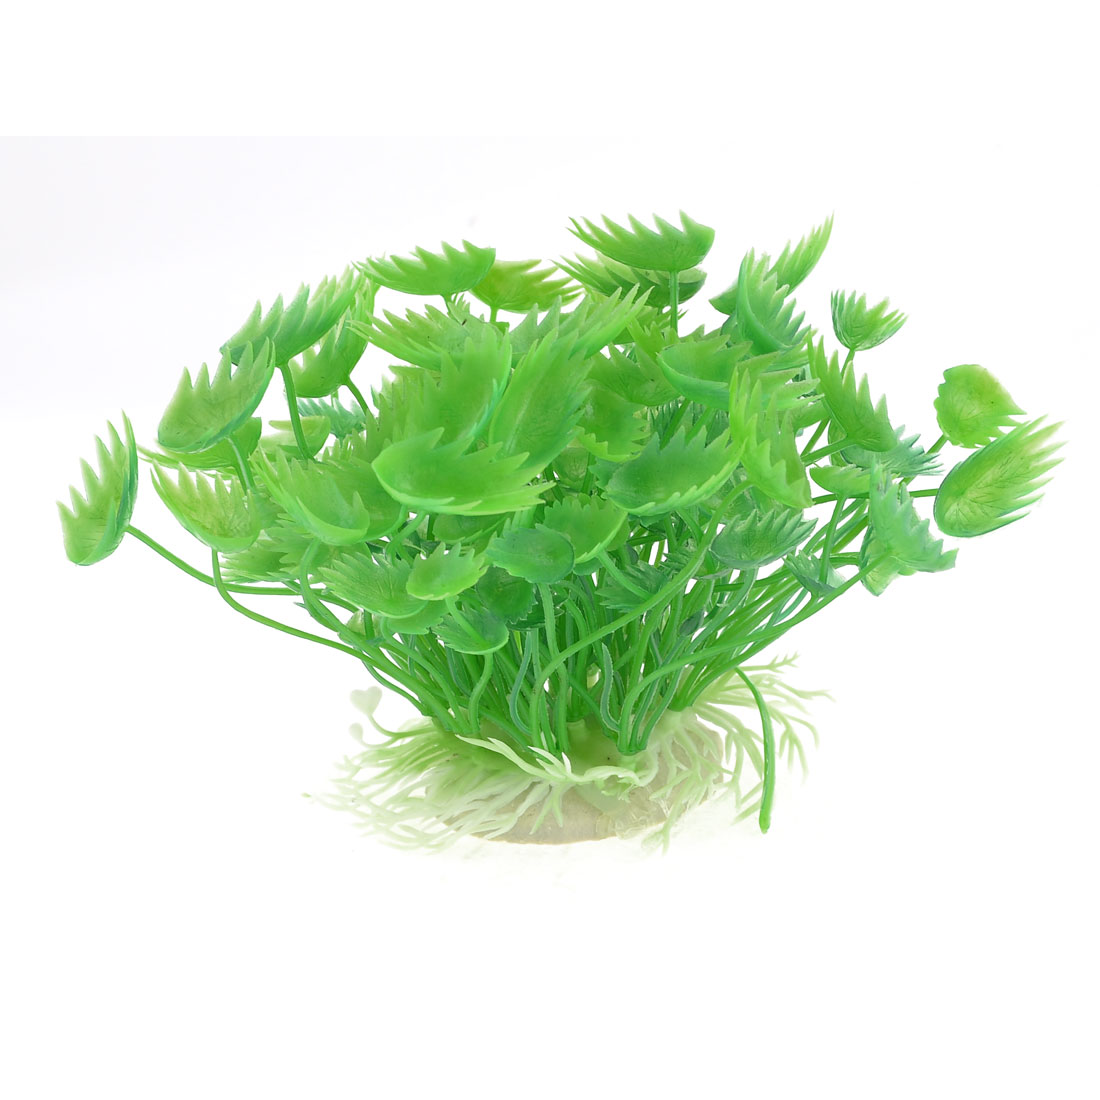 Green Aquarium Plastic Emulational Plant Waterweeds 10cm High